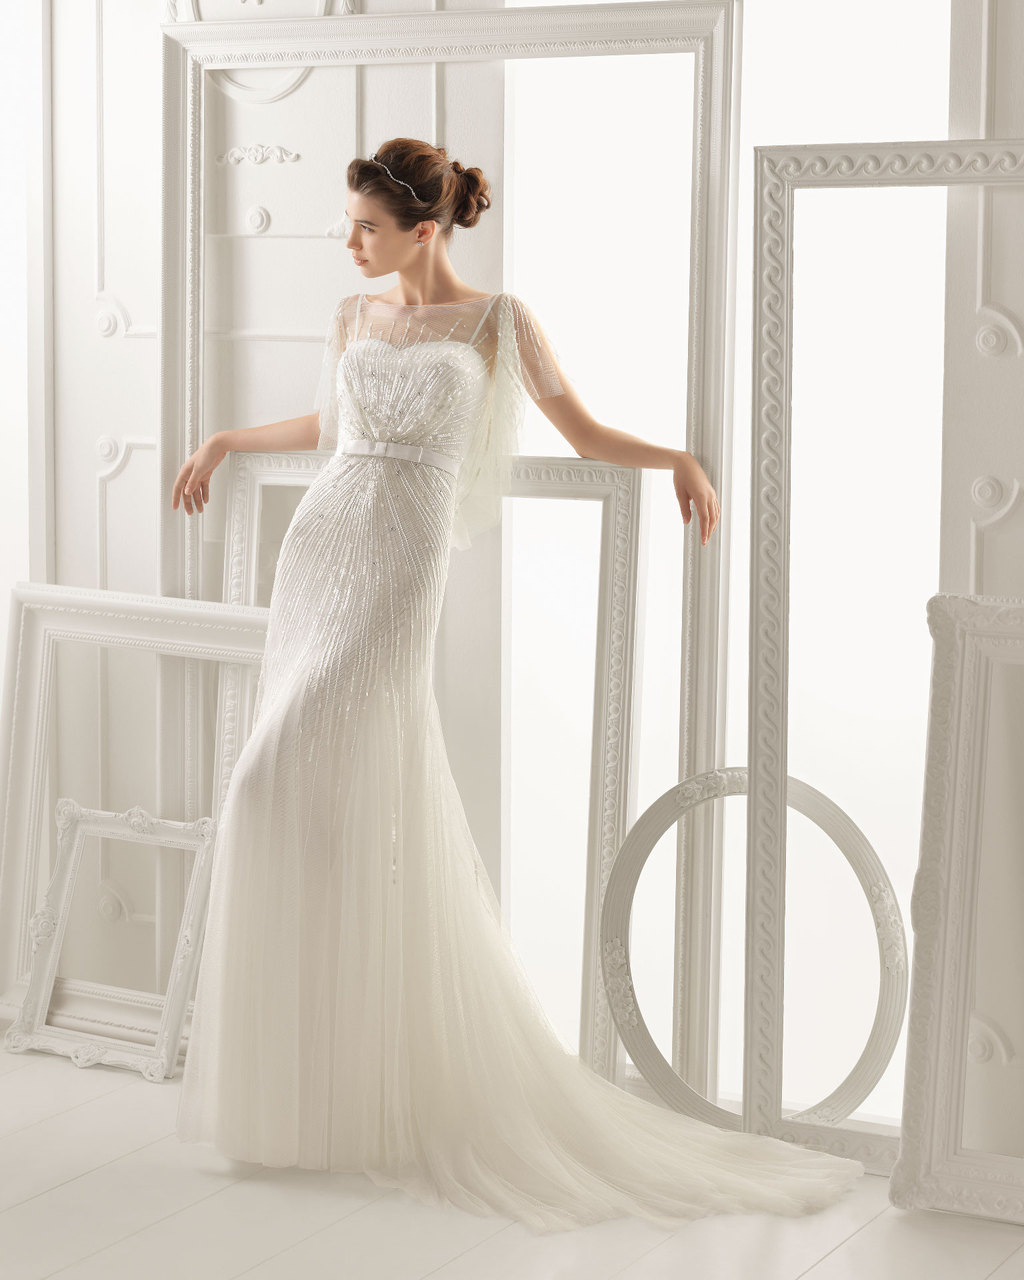 Aire Barcelona wedding dress 2014 Bridal Oneida